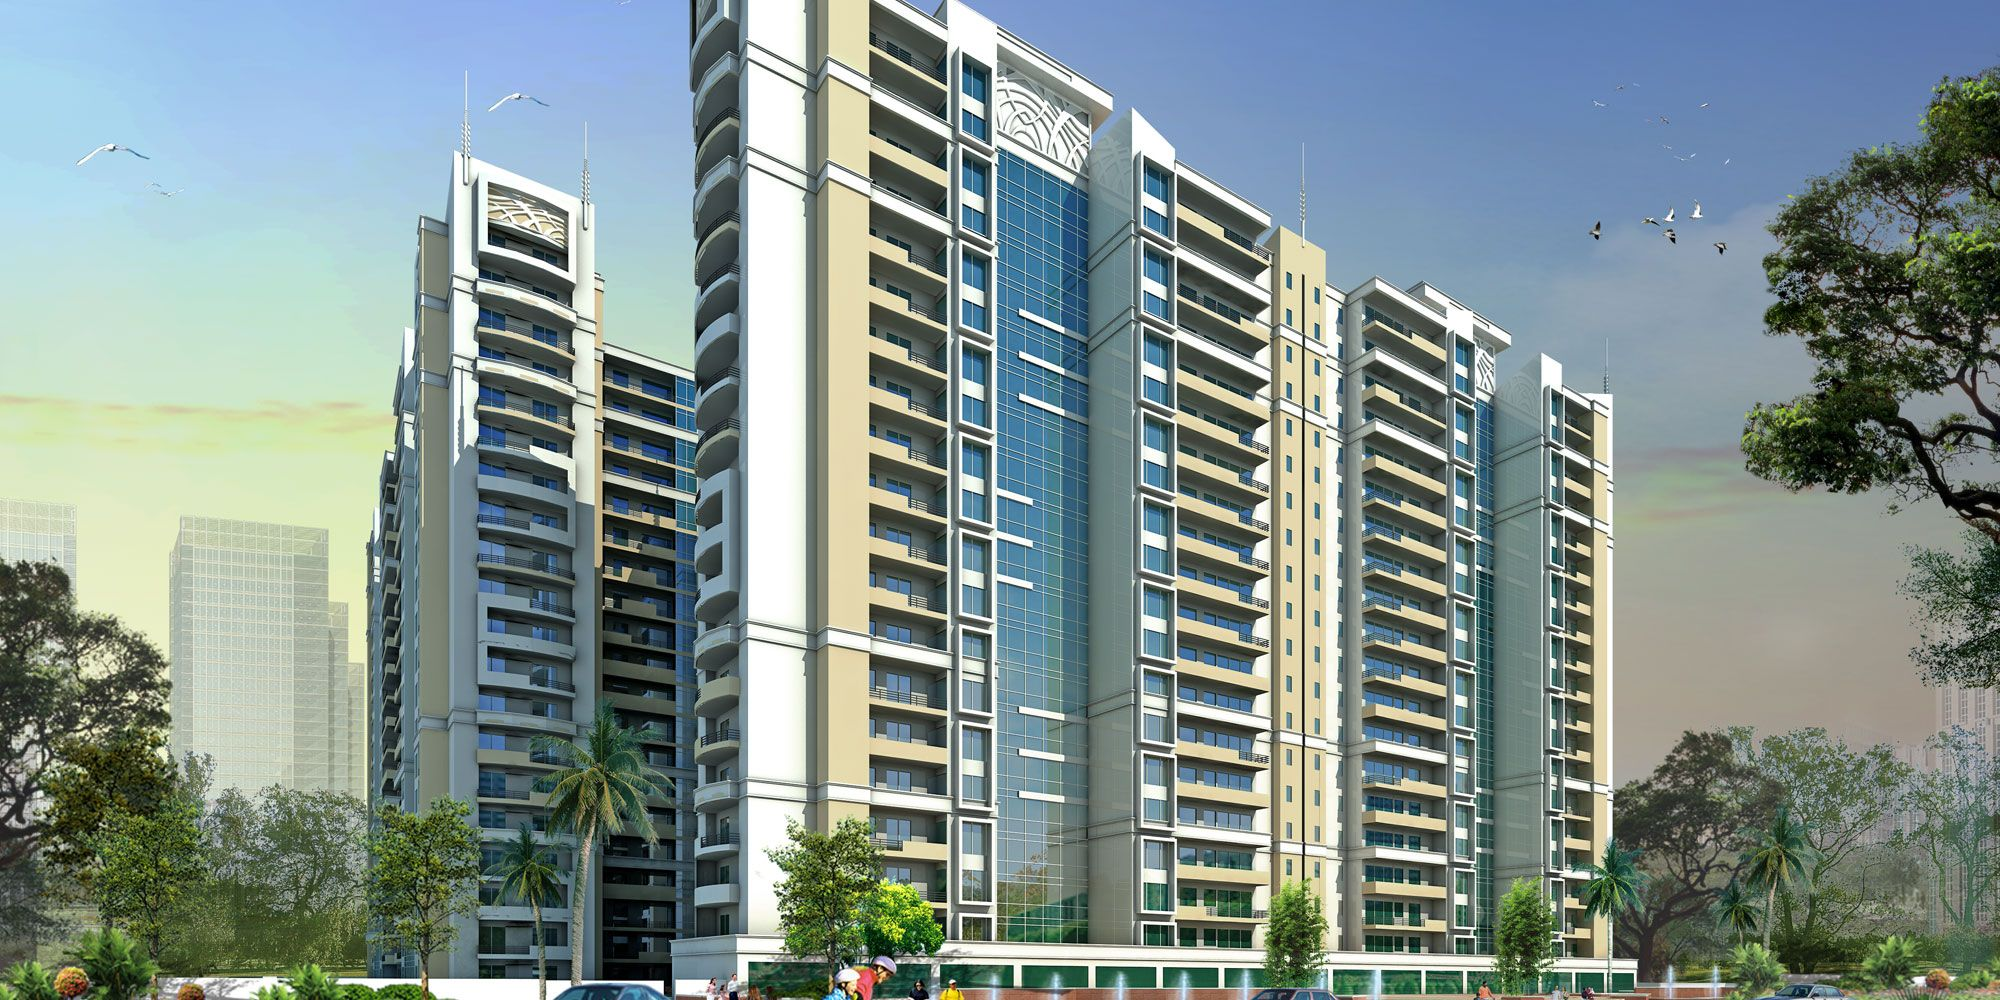 Tata Value Homes Is A Totally Residential Project In Sector 37 Bahadurgarh This Project Is Biggest Investment Opportunity For With Images Buying Property Luxury Apartments